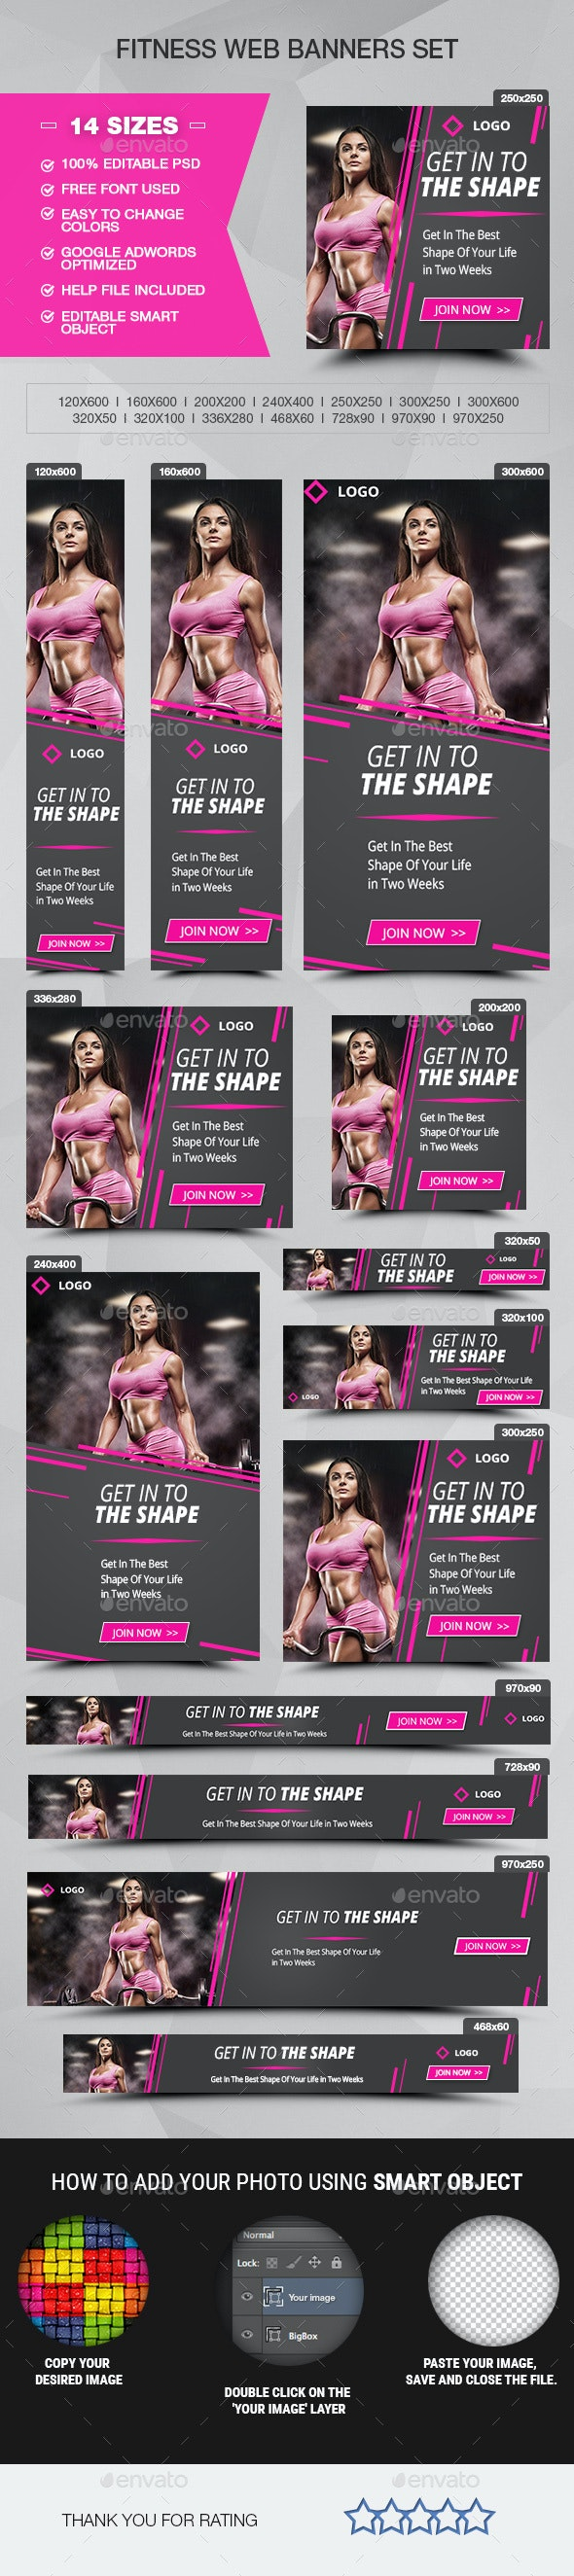 Fitness Banners - Sport Banner Set - Banners & Ads Web Elements